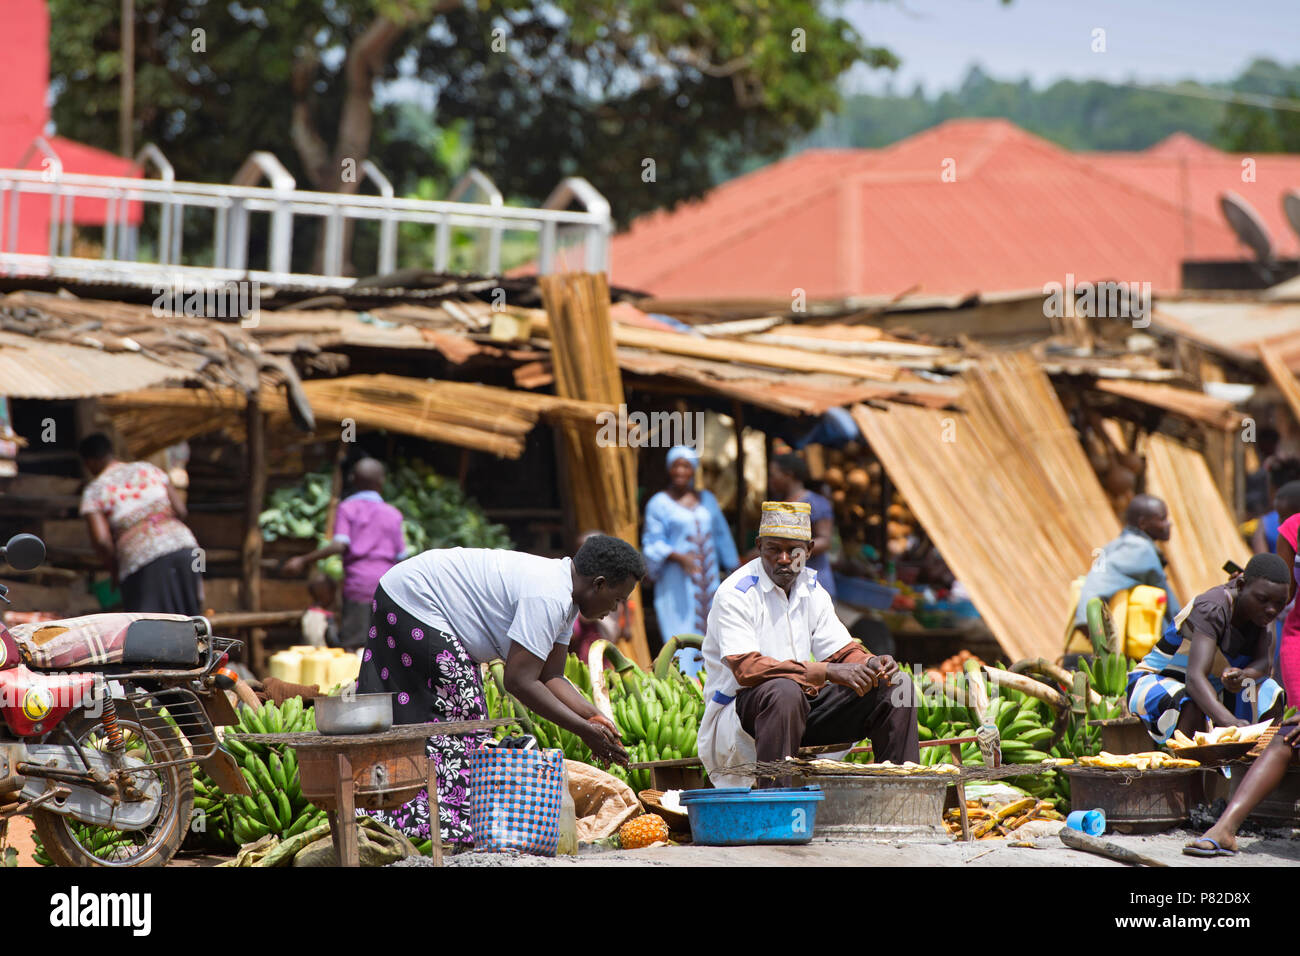 Street Vendors, Selling Matooke Uganda, Roadside Food Market, Fruits And Vegetables Market,  East Africa - Stock Image